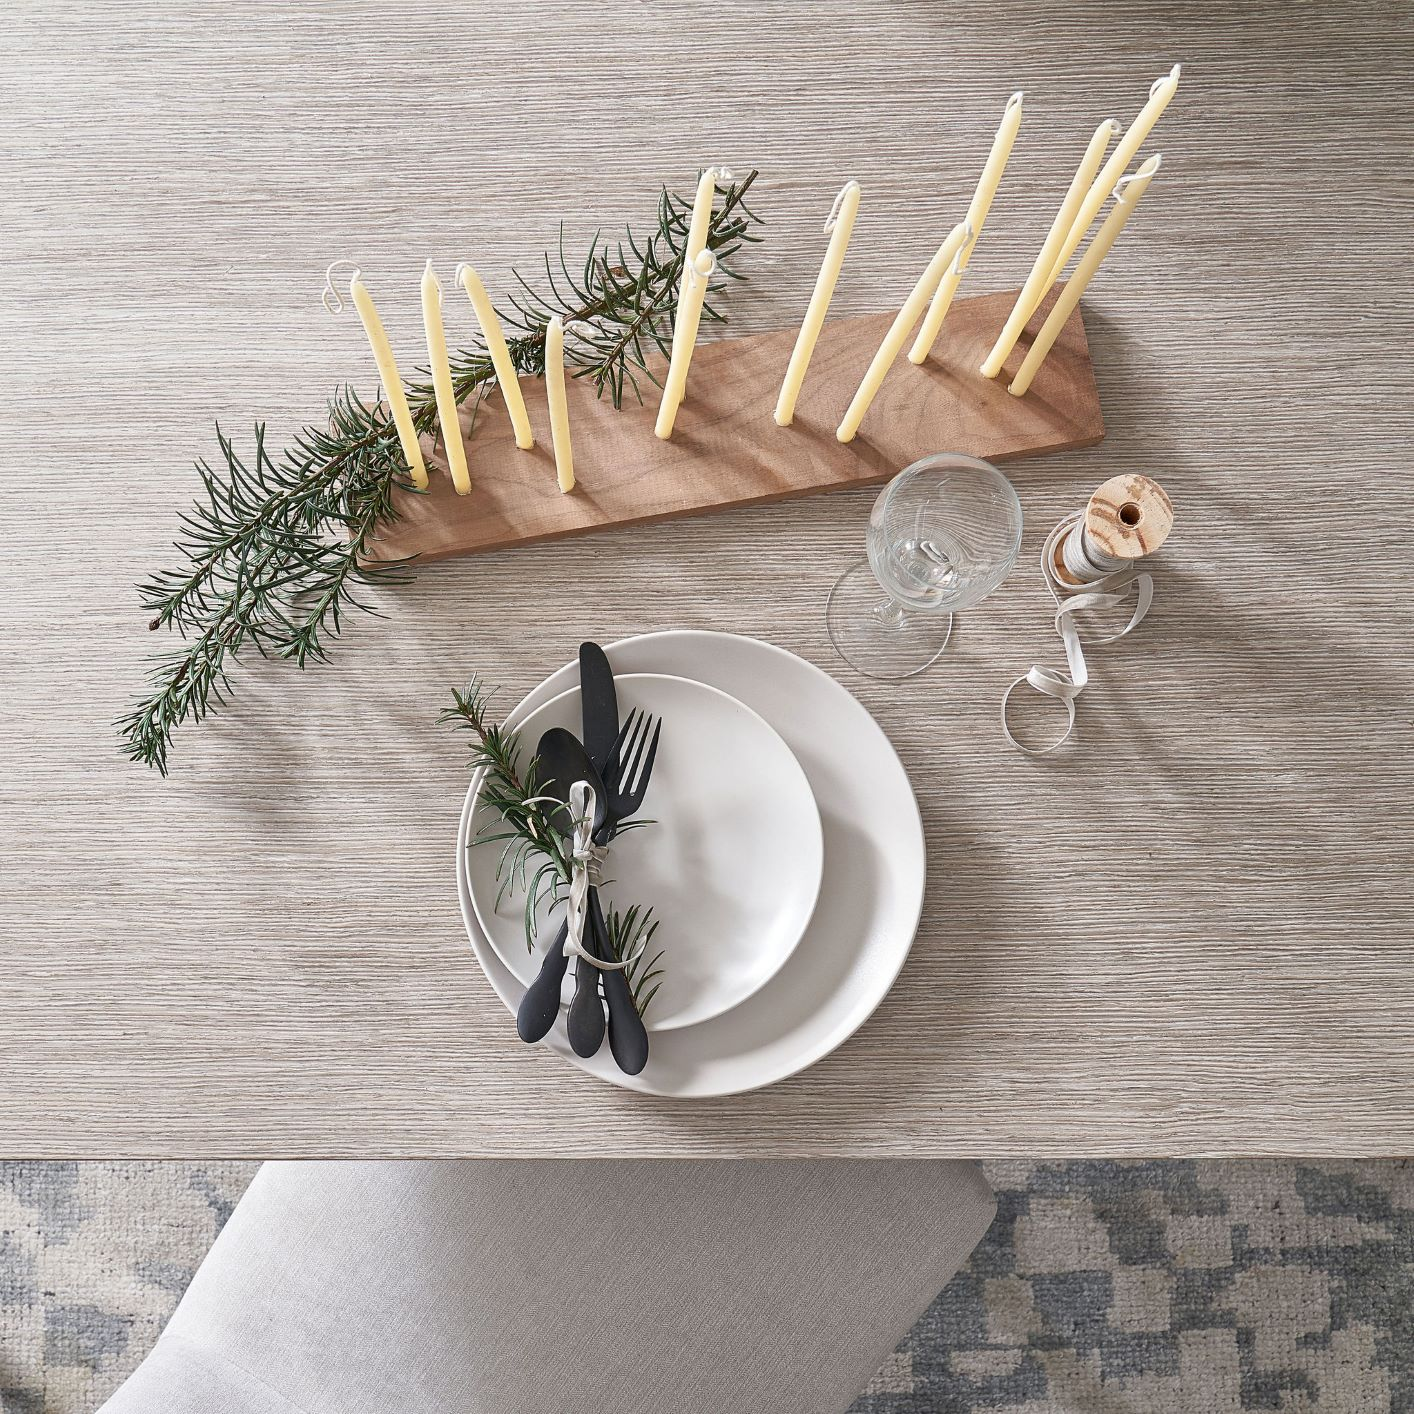 Minimalist Holiday Tablescape